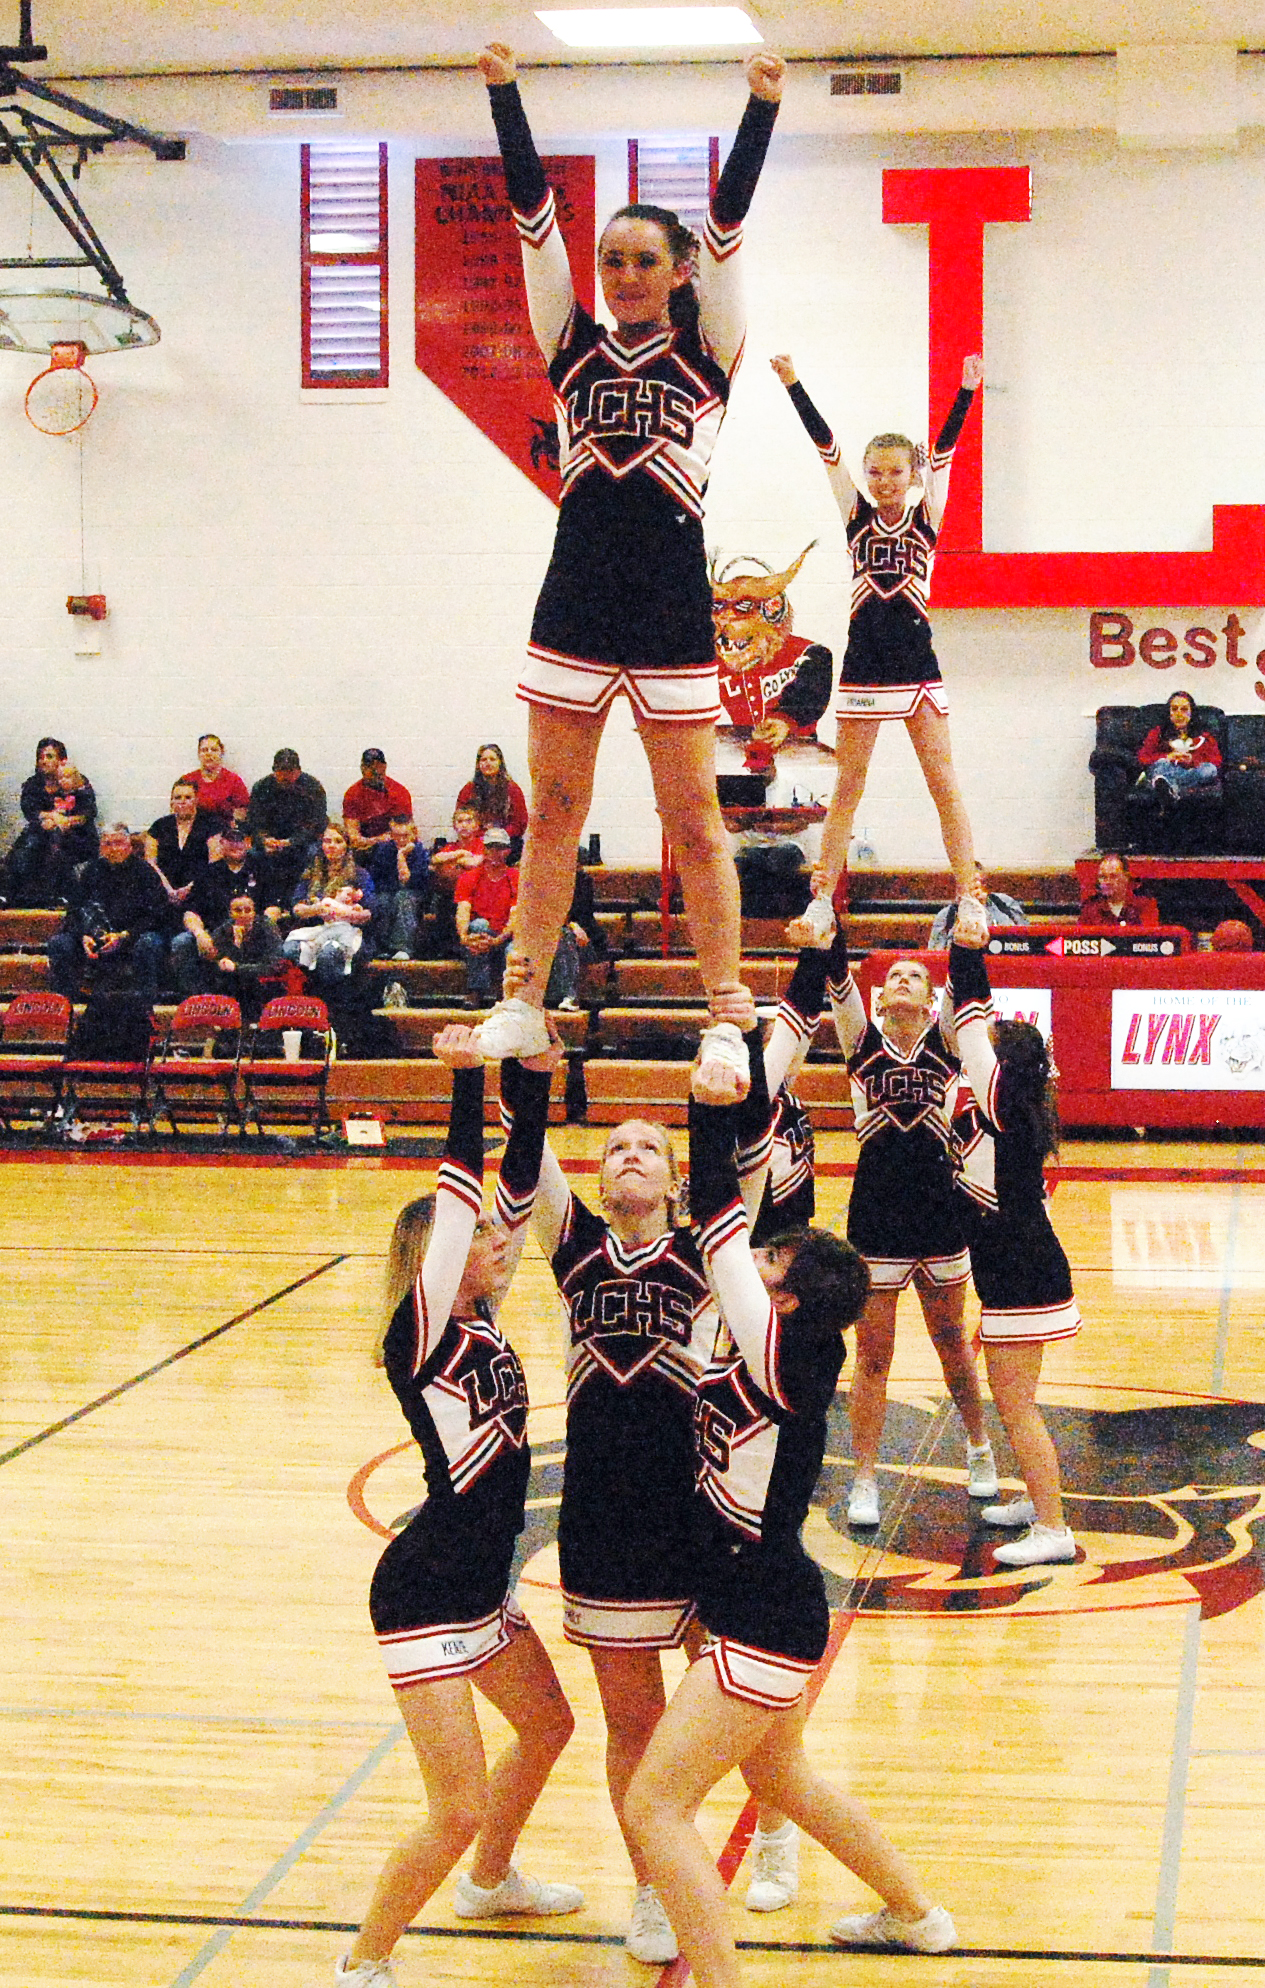 LCHS cheerleaders turning heads